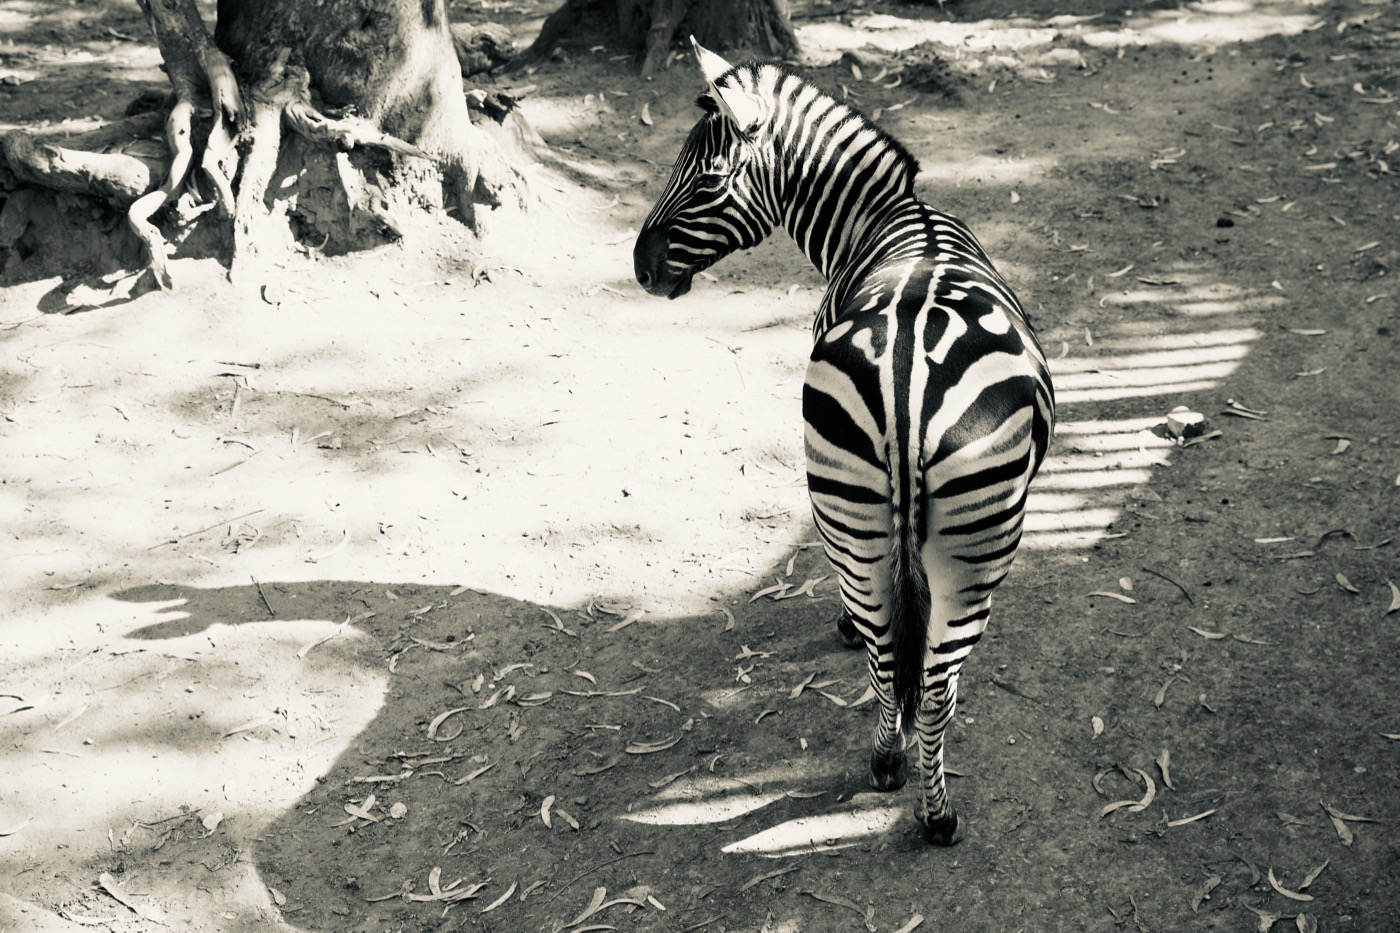 Zebra at the Kunming Zoo